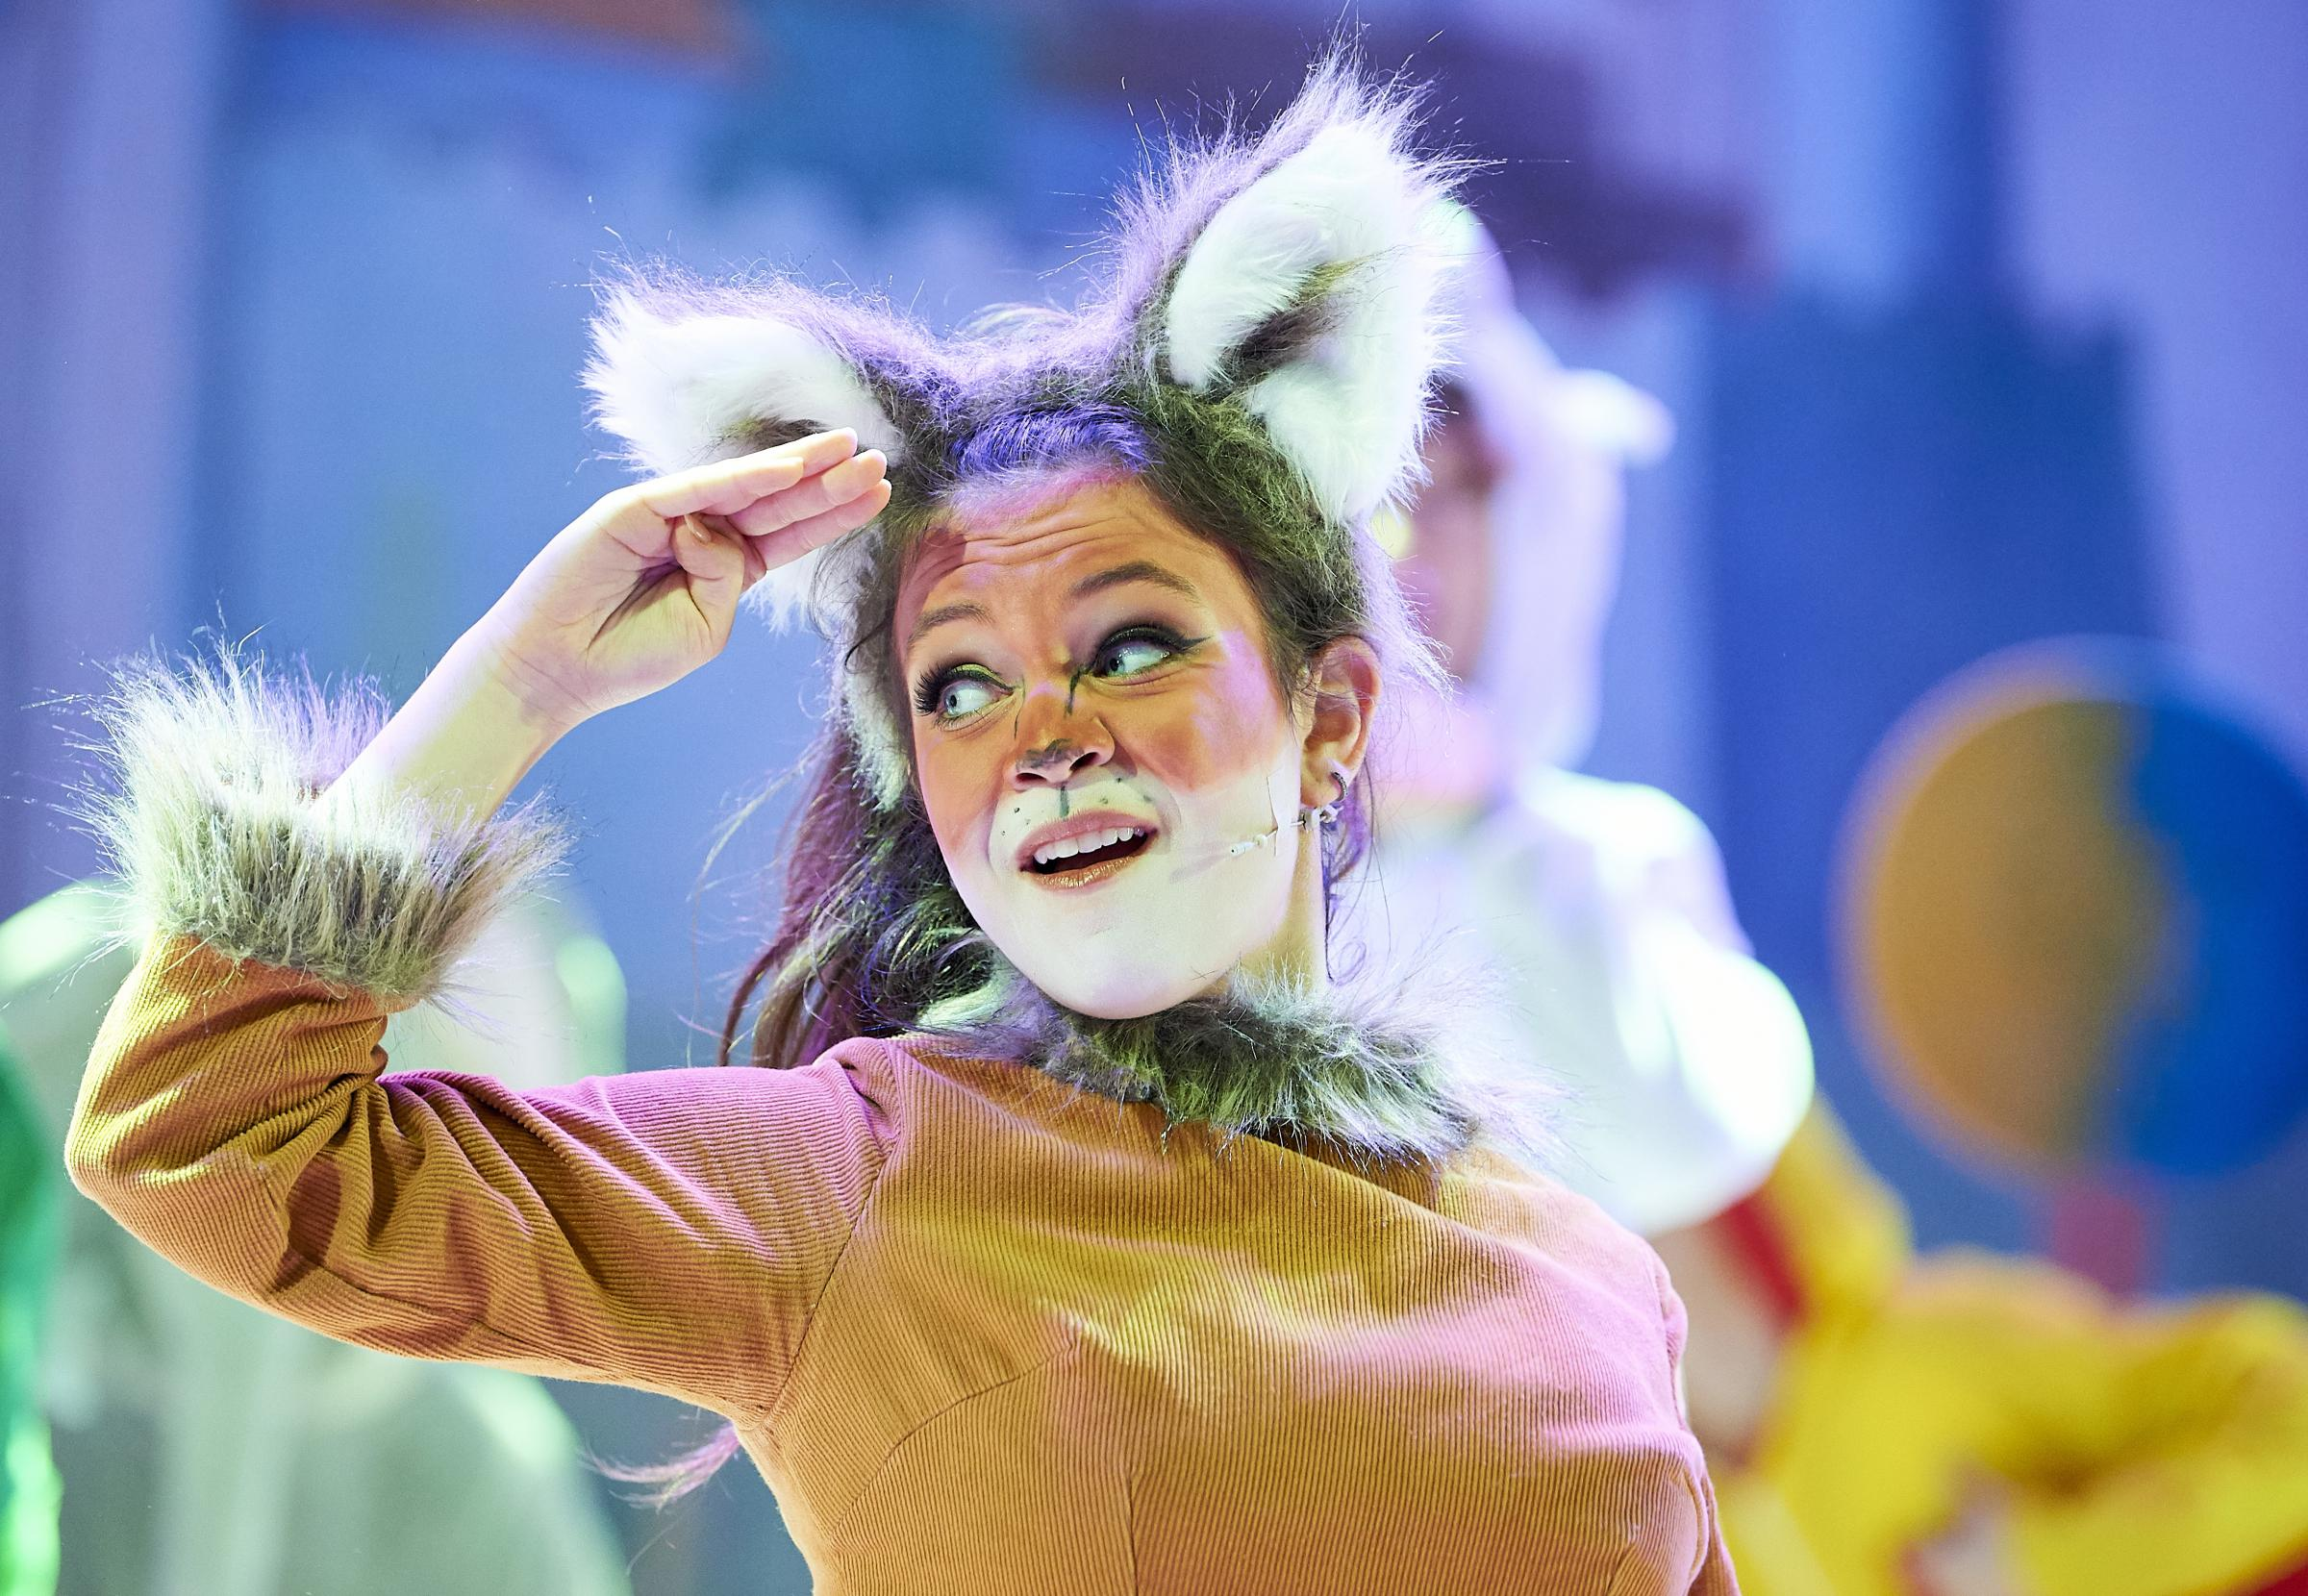 Beauty and the Beast at Oxford Playhouse: 'Panto is the hardest thing I've done!' says Edmund Kingsley